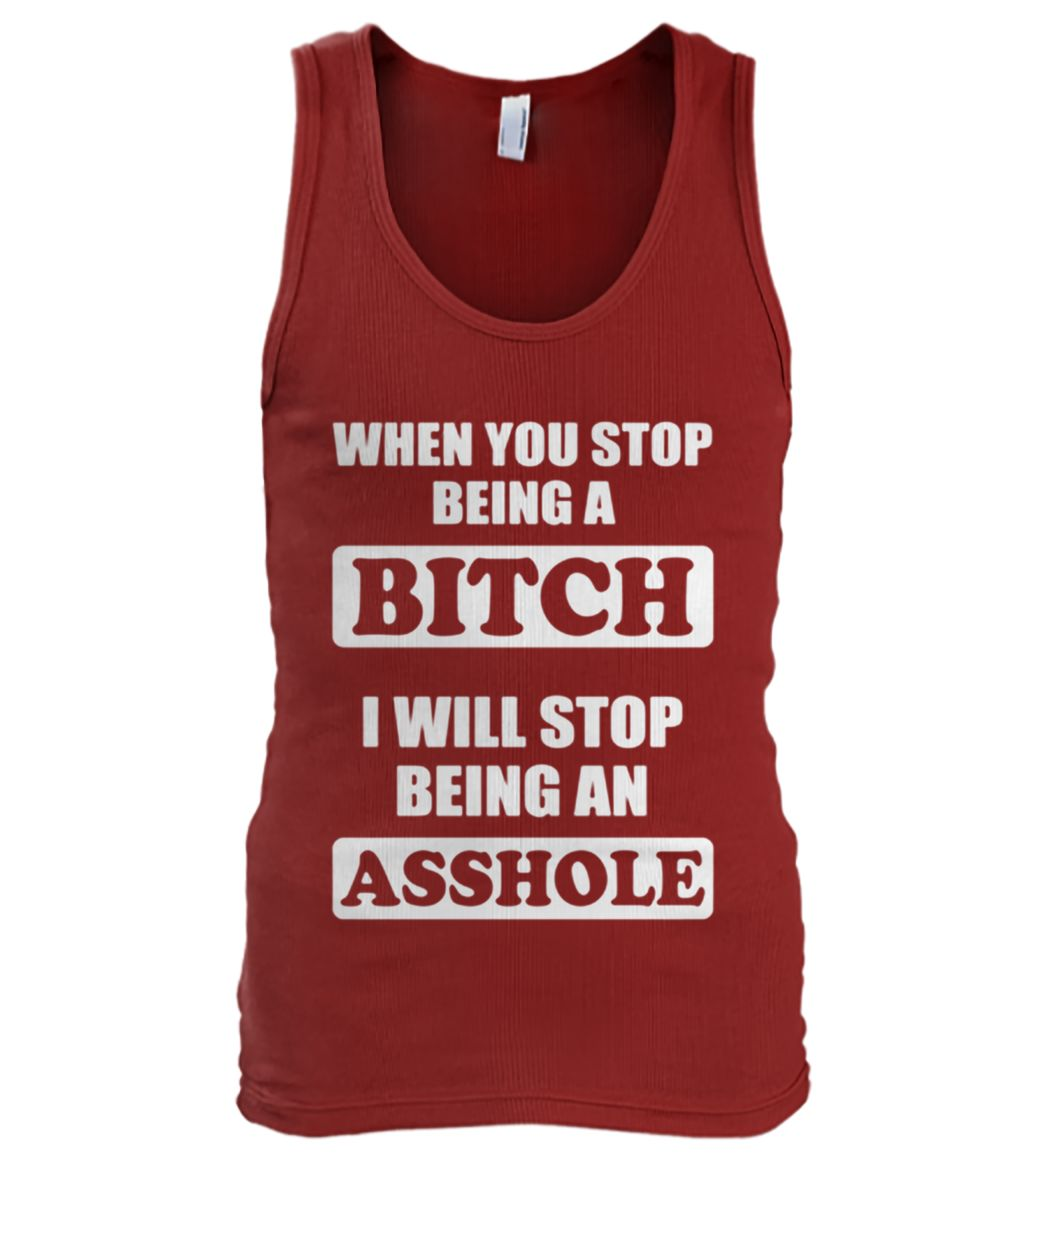 When you stop being a bitch I will stop being an asshole men's tank top